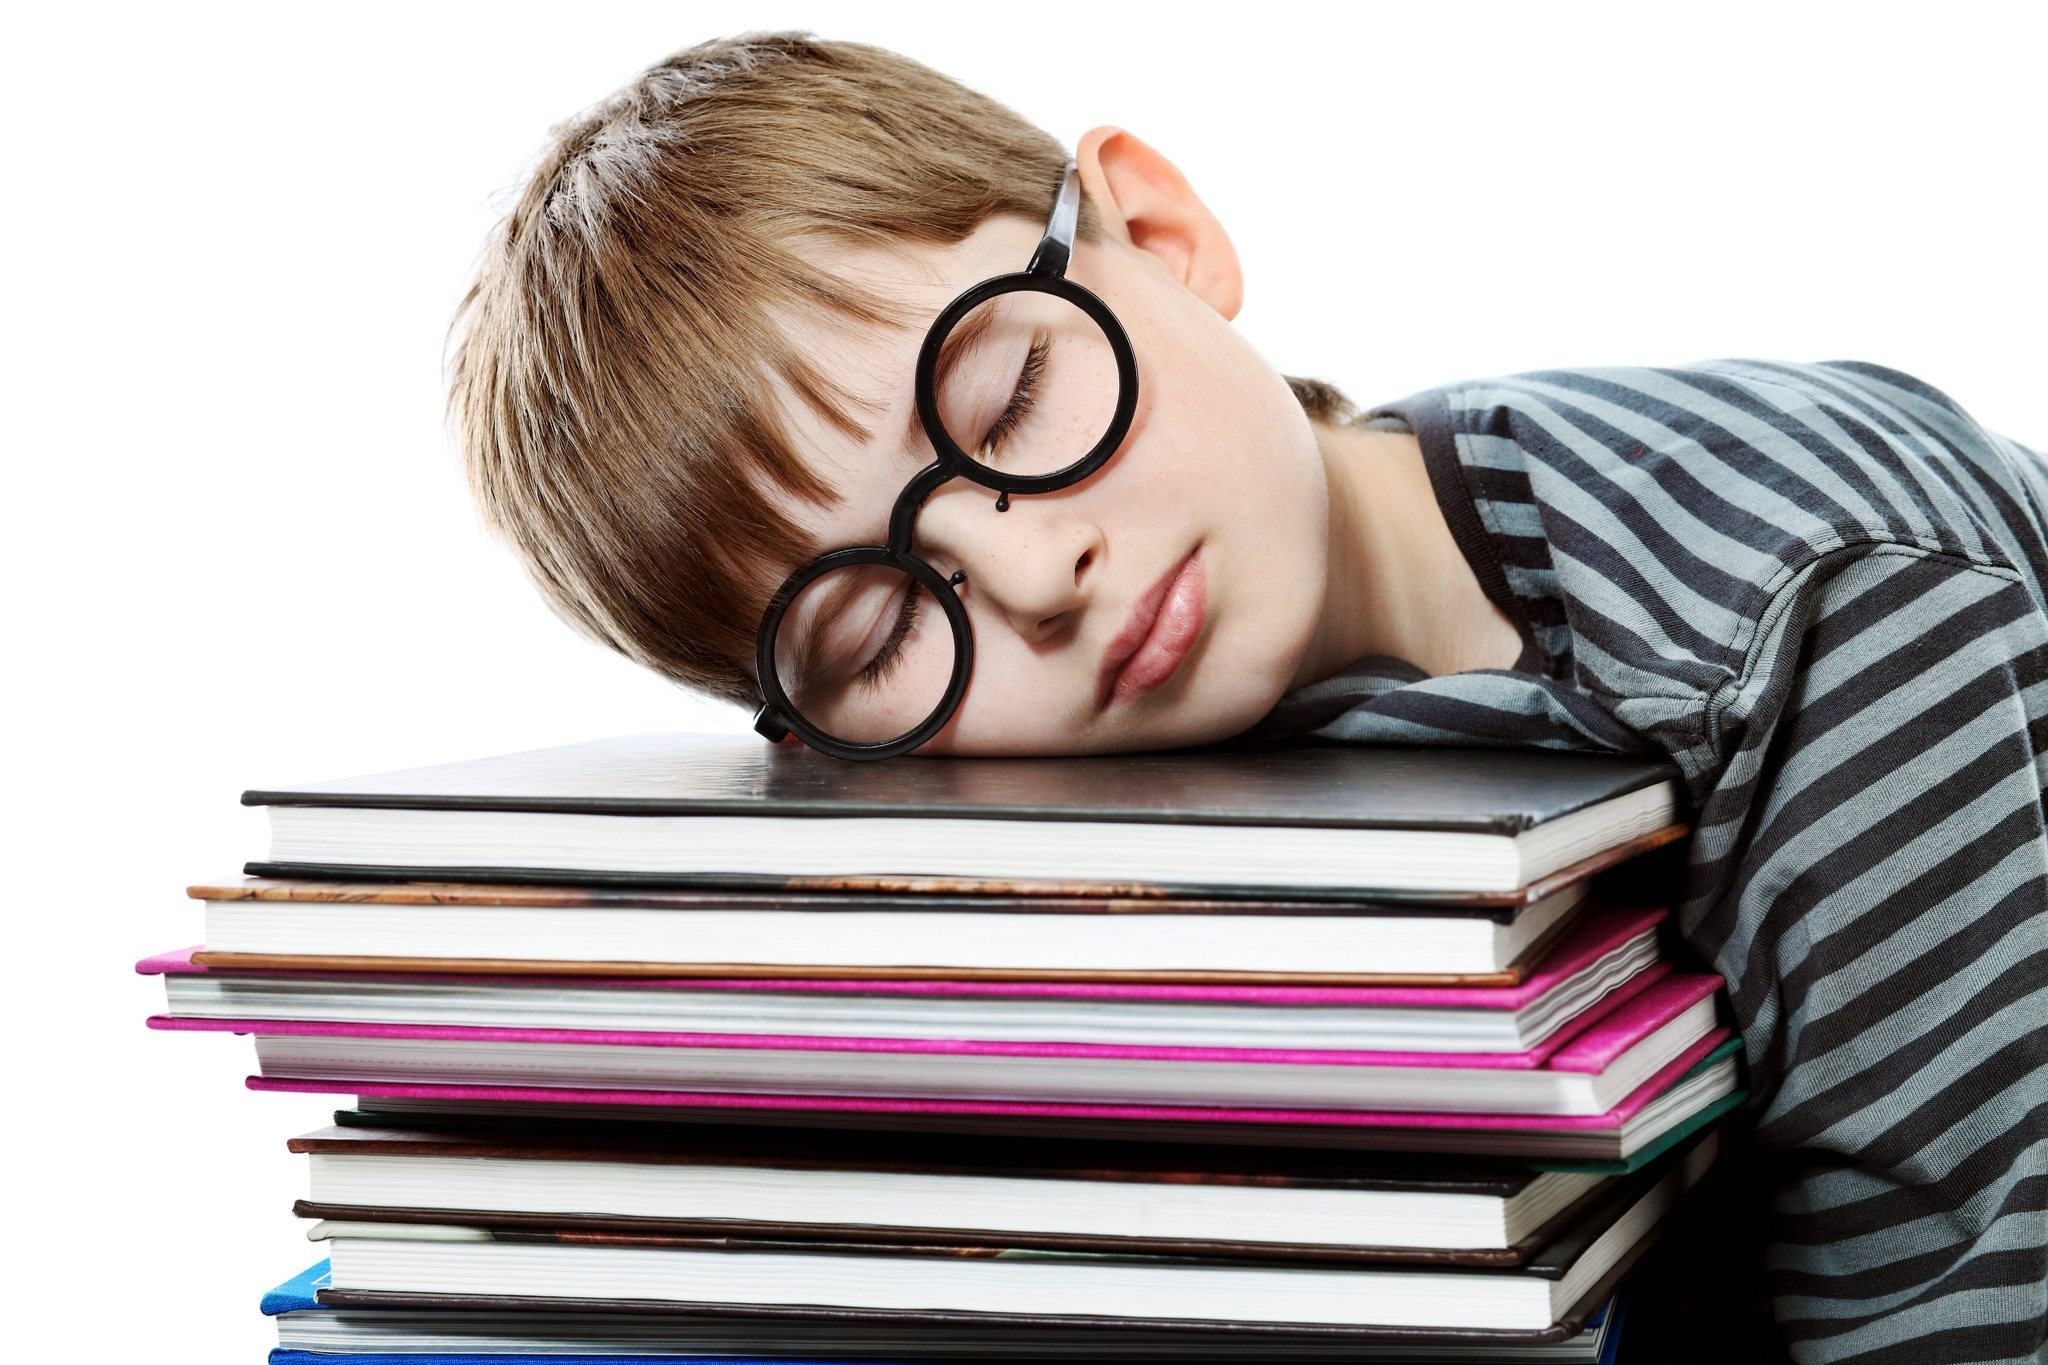 Want to learn something? Sleep on it, but not too deeply. (FILE Photo)